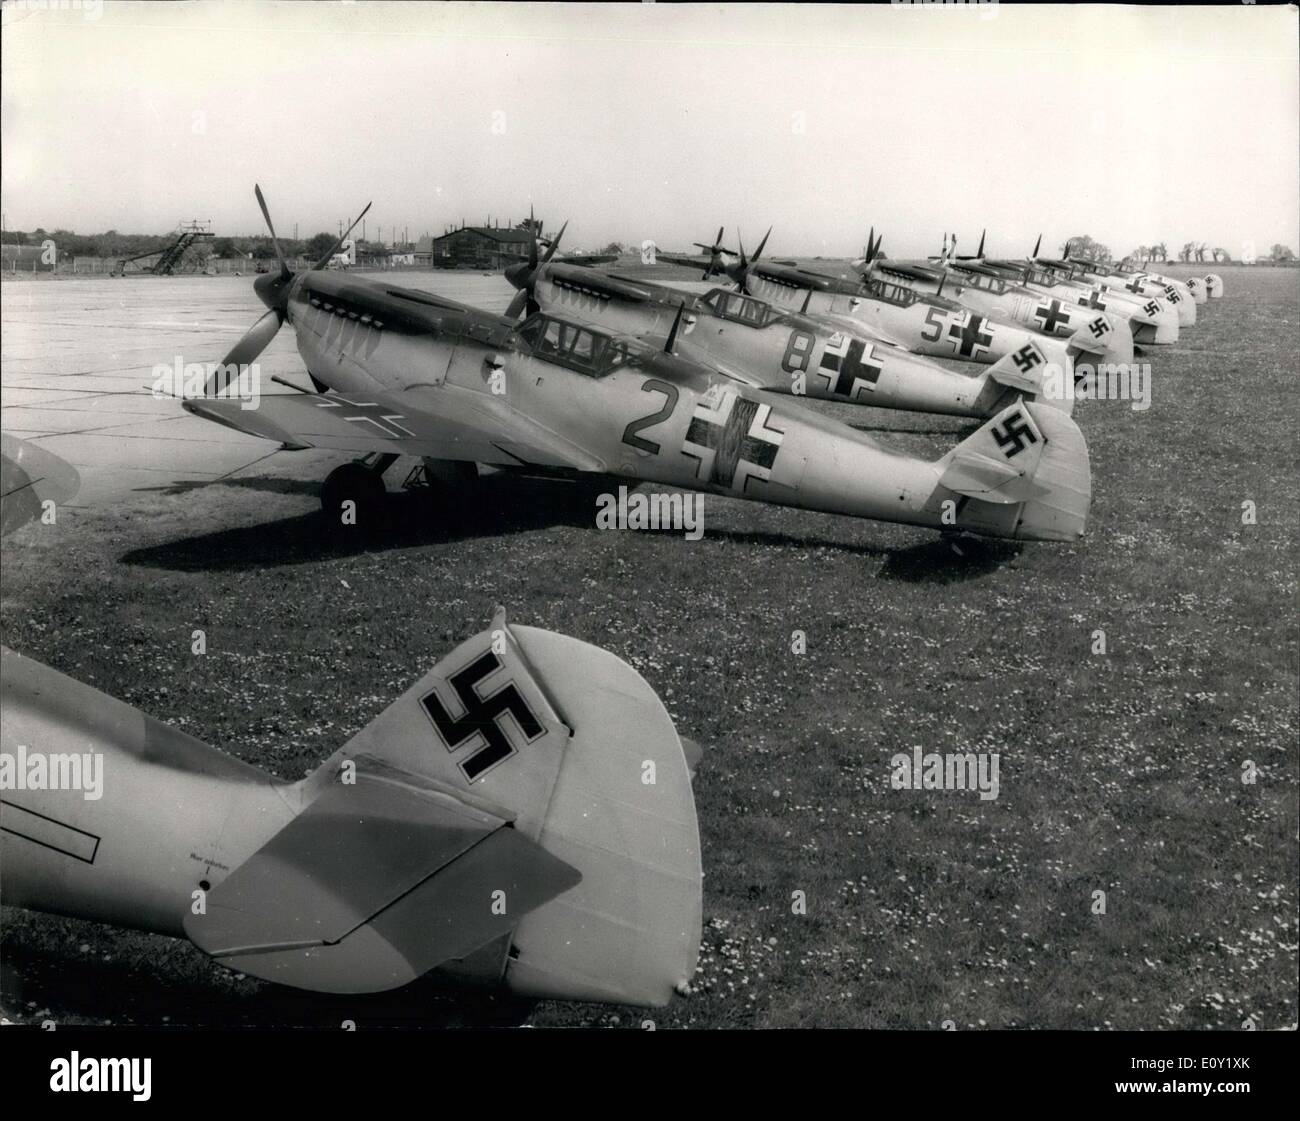 may 14 1968 german warplanes at manstonfor the